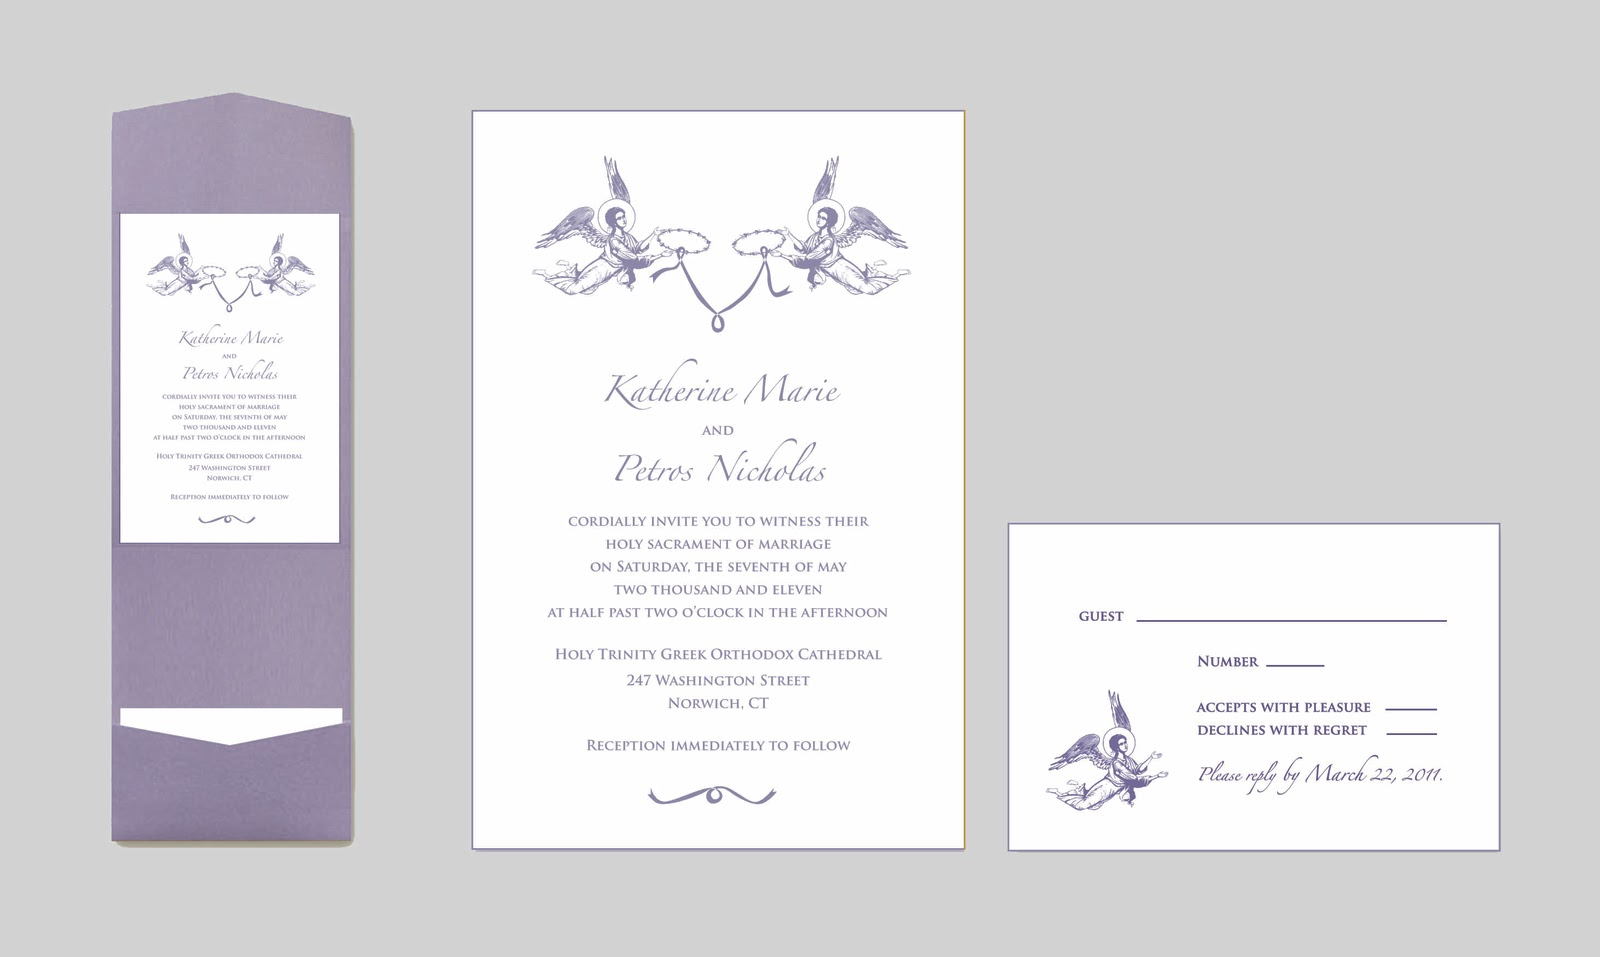 purple and beige wedding invitations wedding card messages bangla - Christian Wedding Card Messages